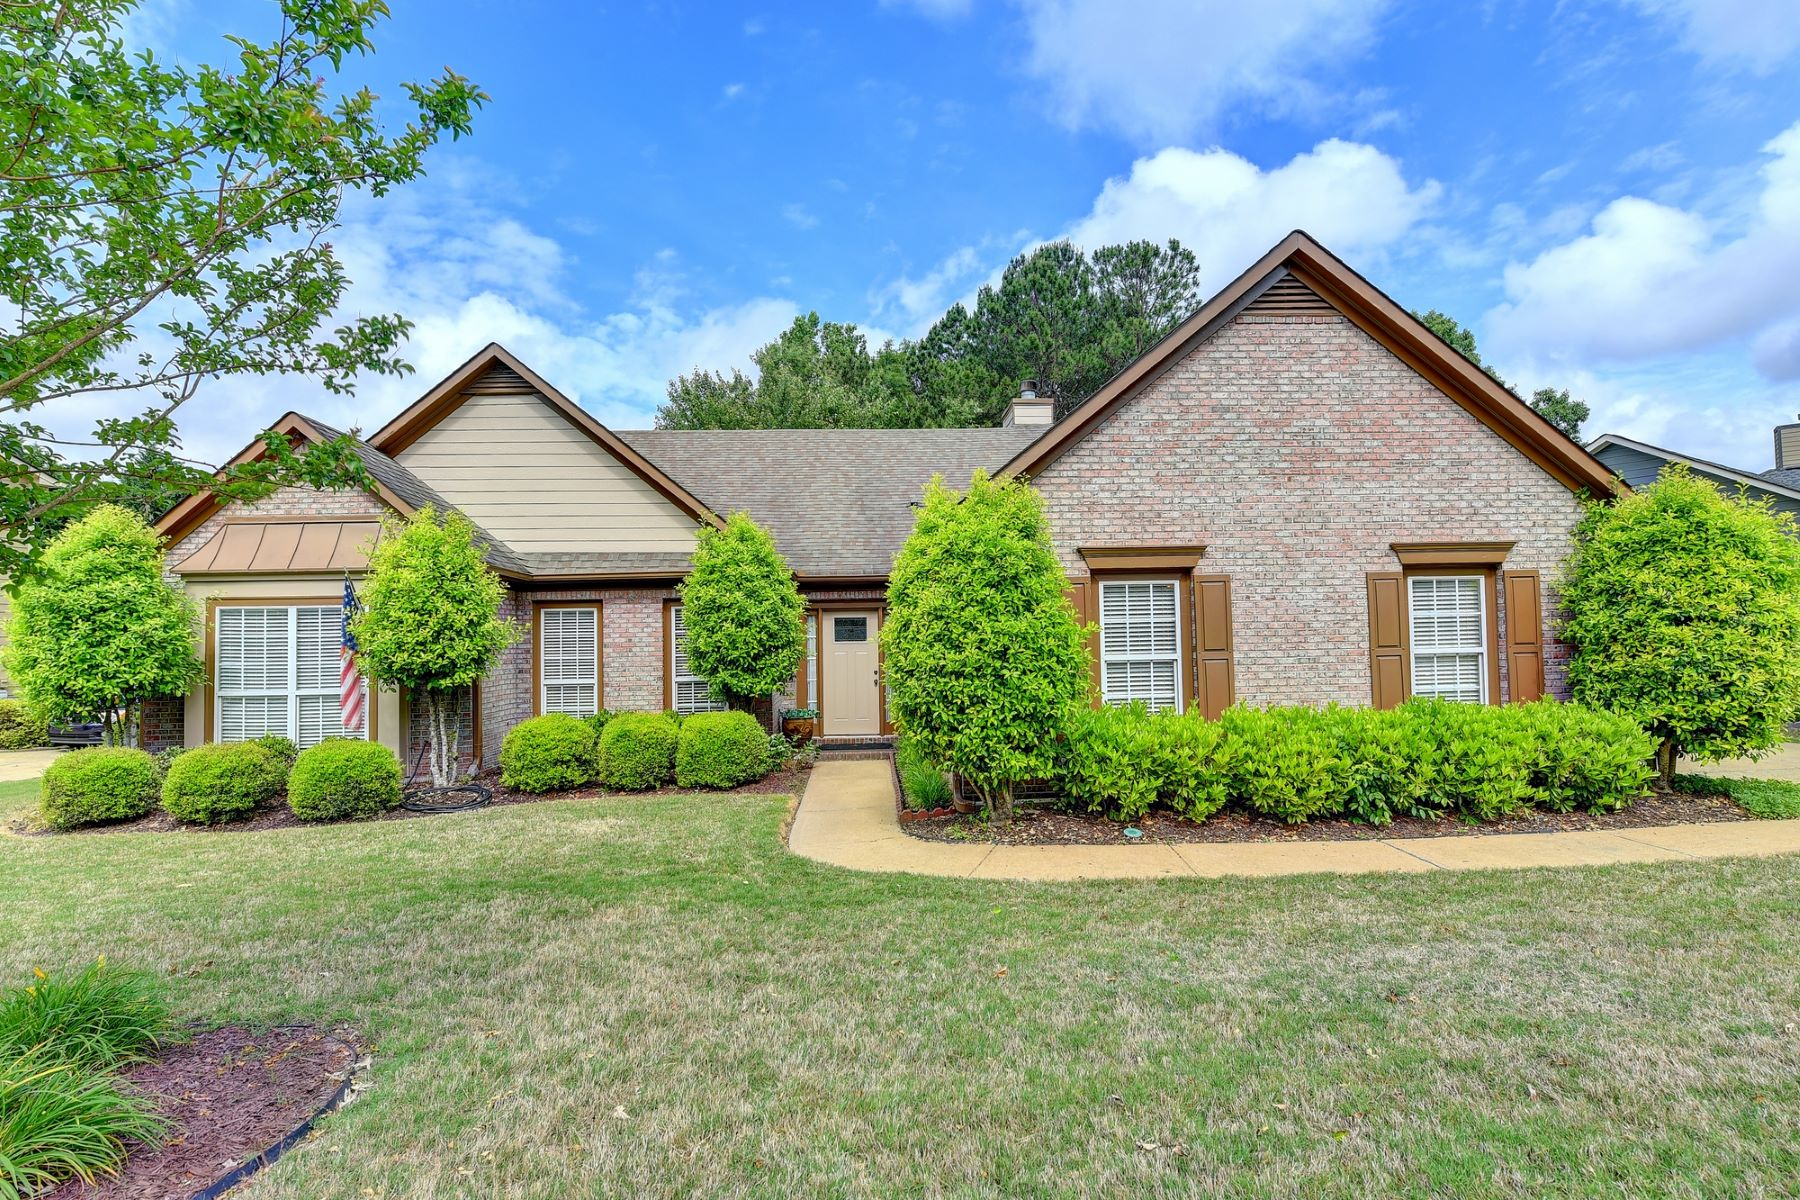 Single Family Homes for Sale at Charming Brick Ranch In Sought After Buford! 3120 Goldmist Drive Buford, Georgia 30519 United States